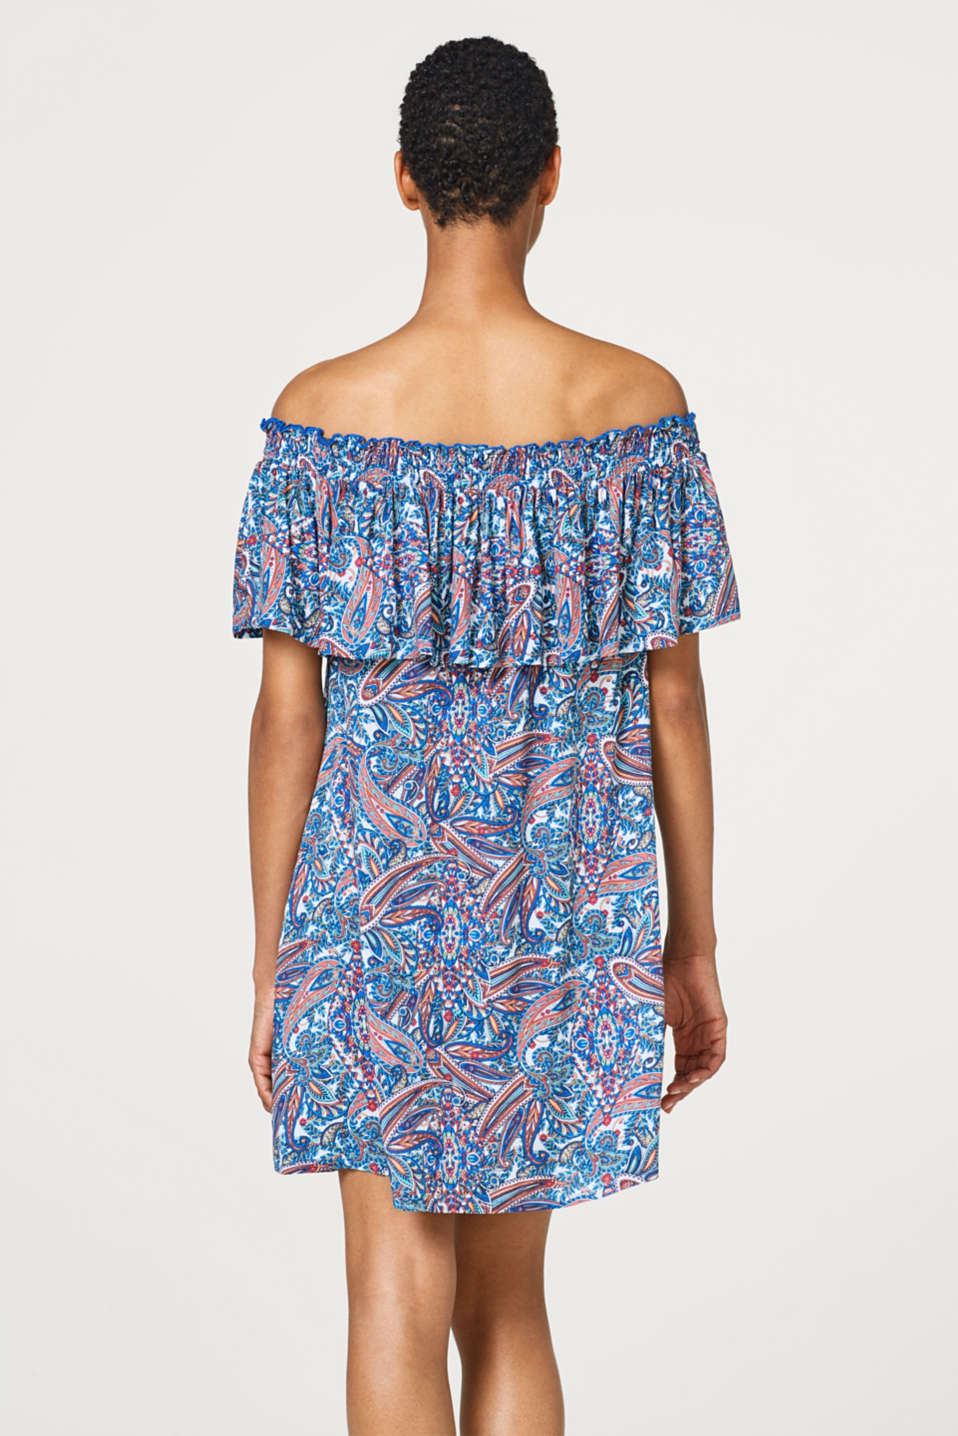 Off-Shoulder-Kleid mit Paisley-Print